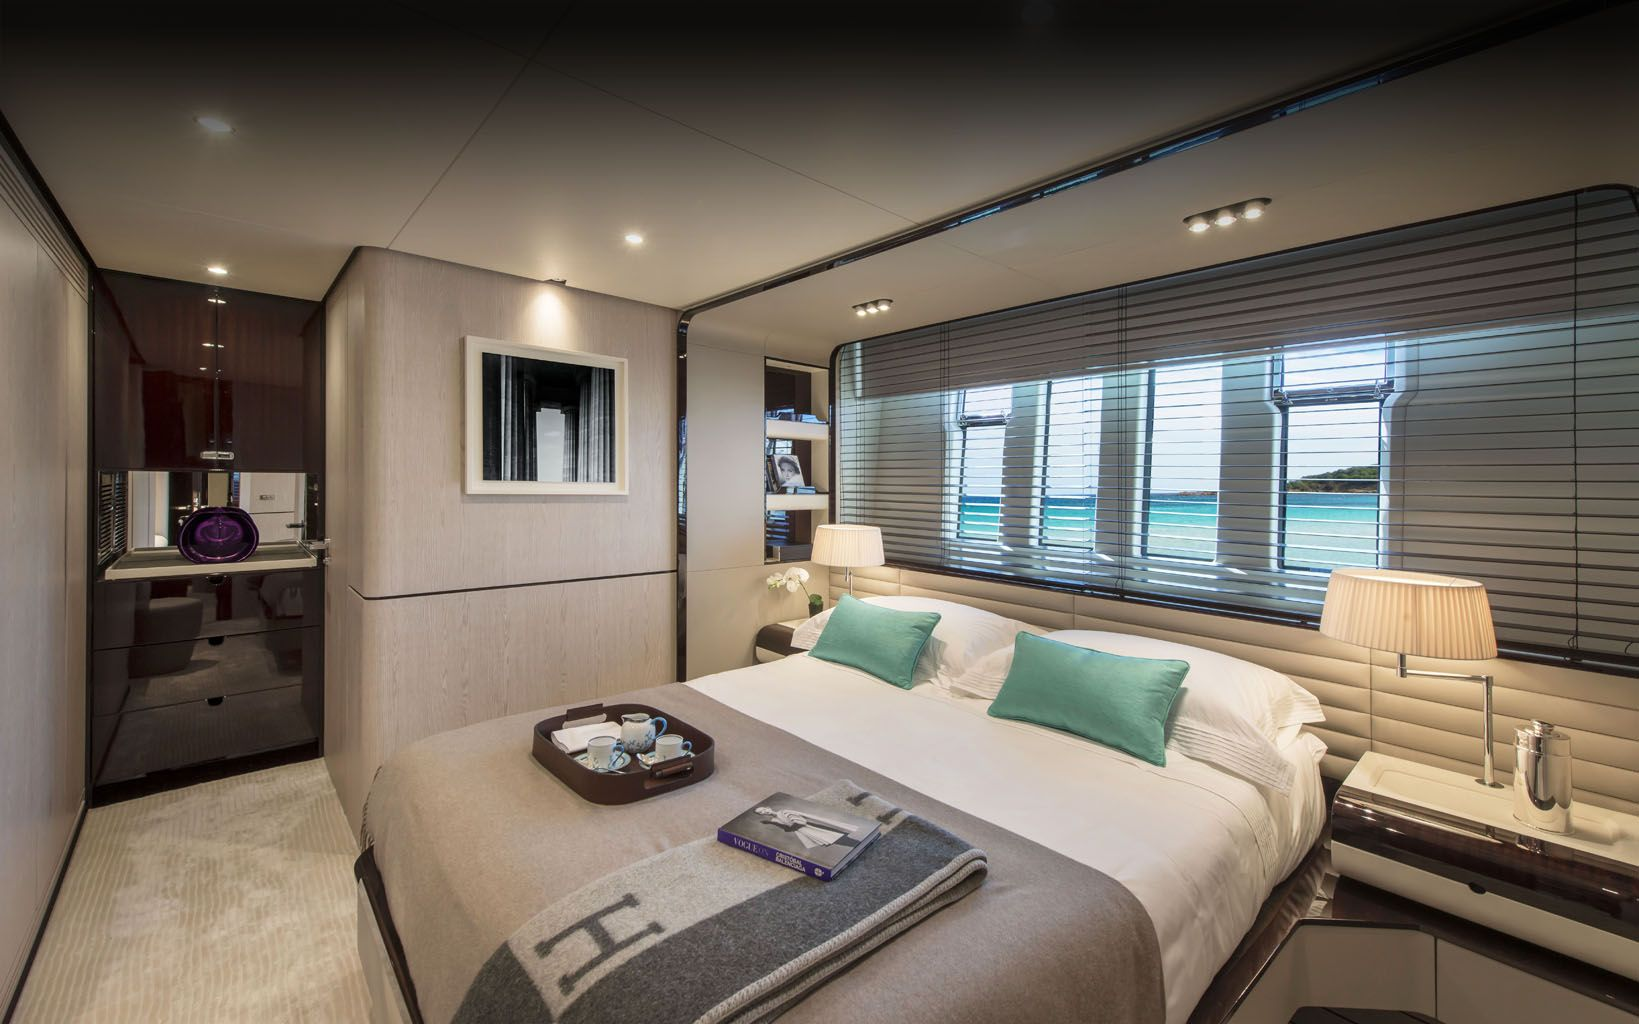 POSEIDON BOAT INTERIOR DESIGN BEDROOM Pinterest Boat